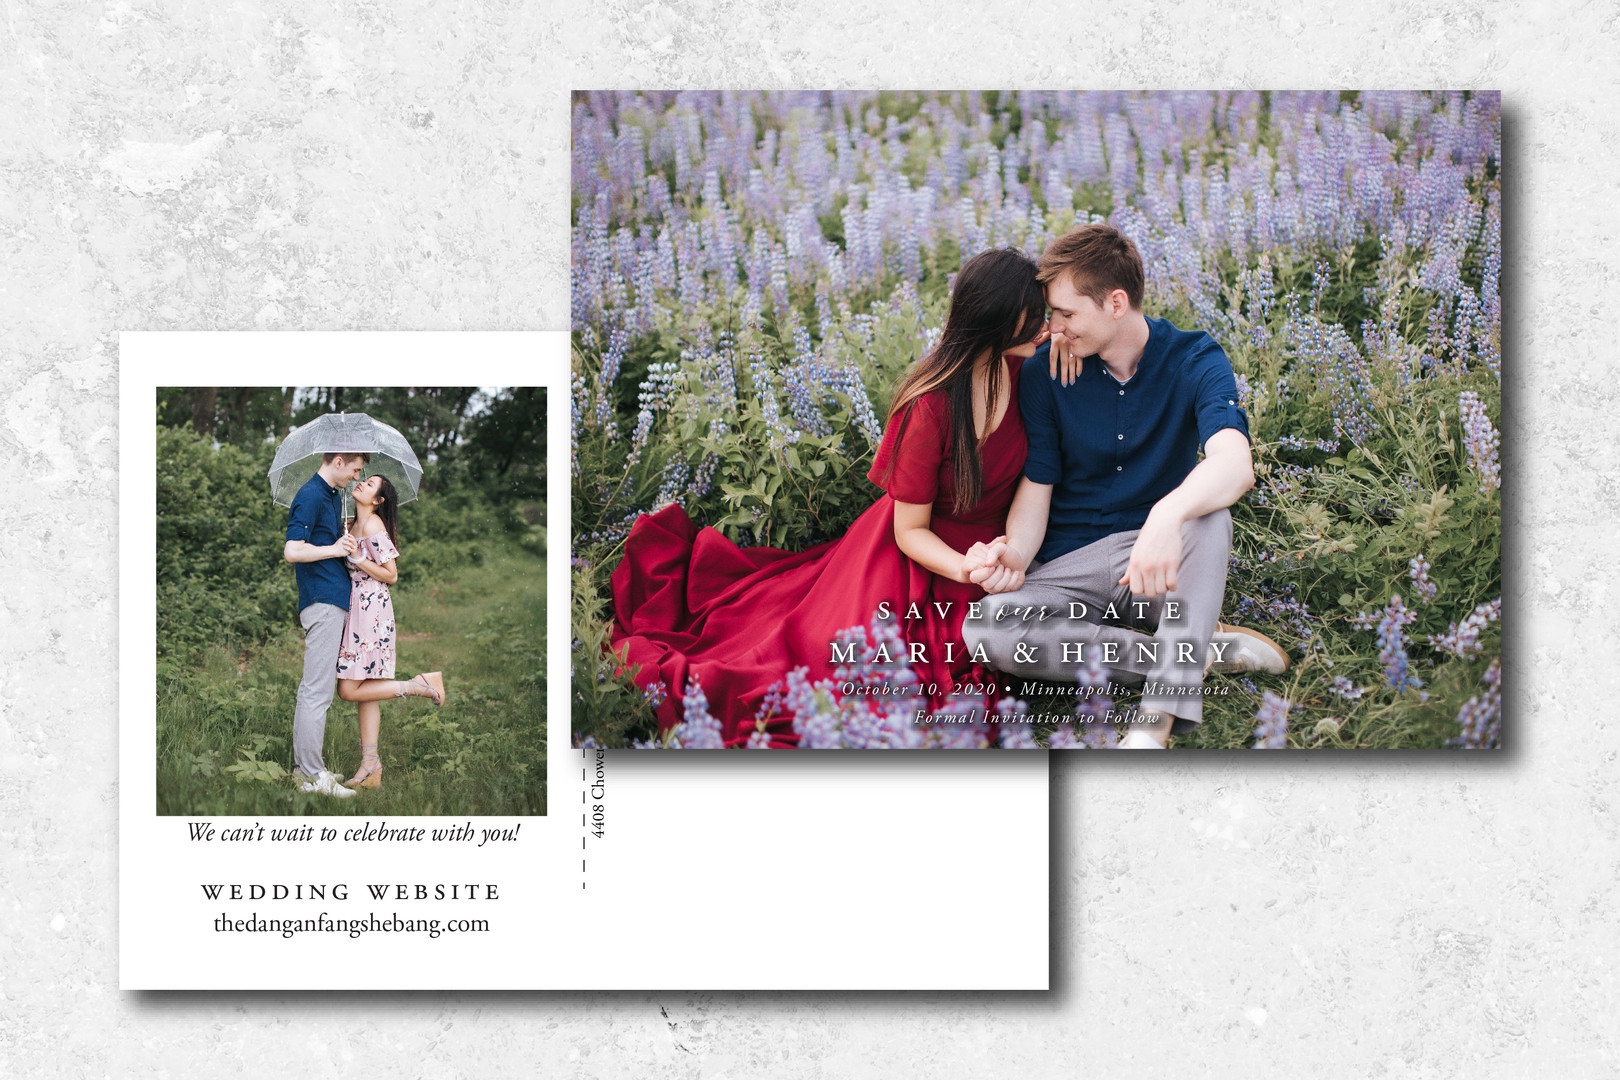 Maria&Henry_save the date-01.jpg